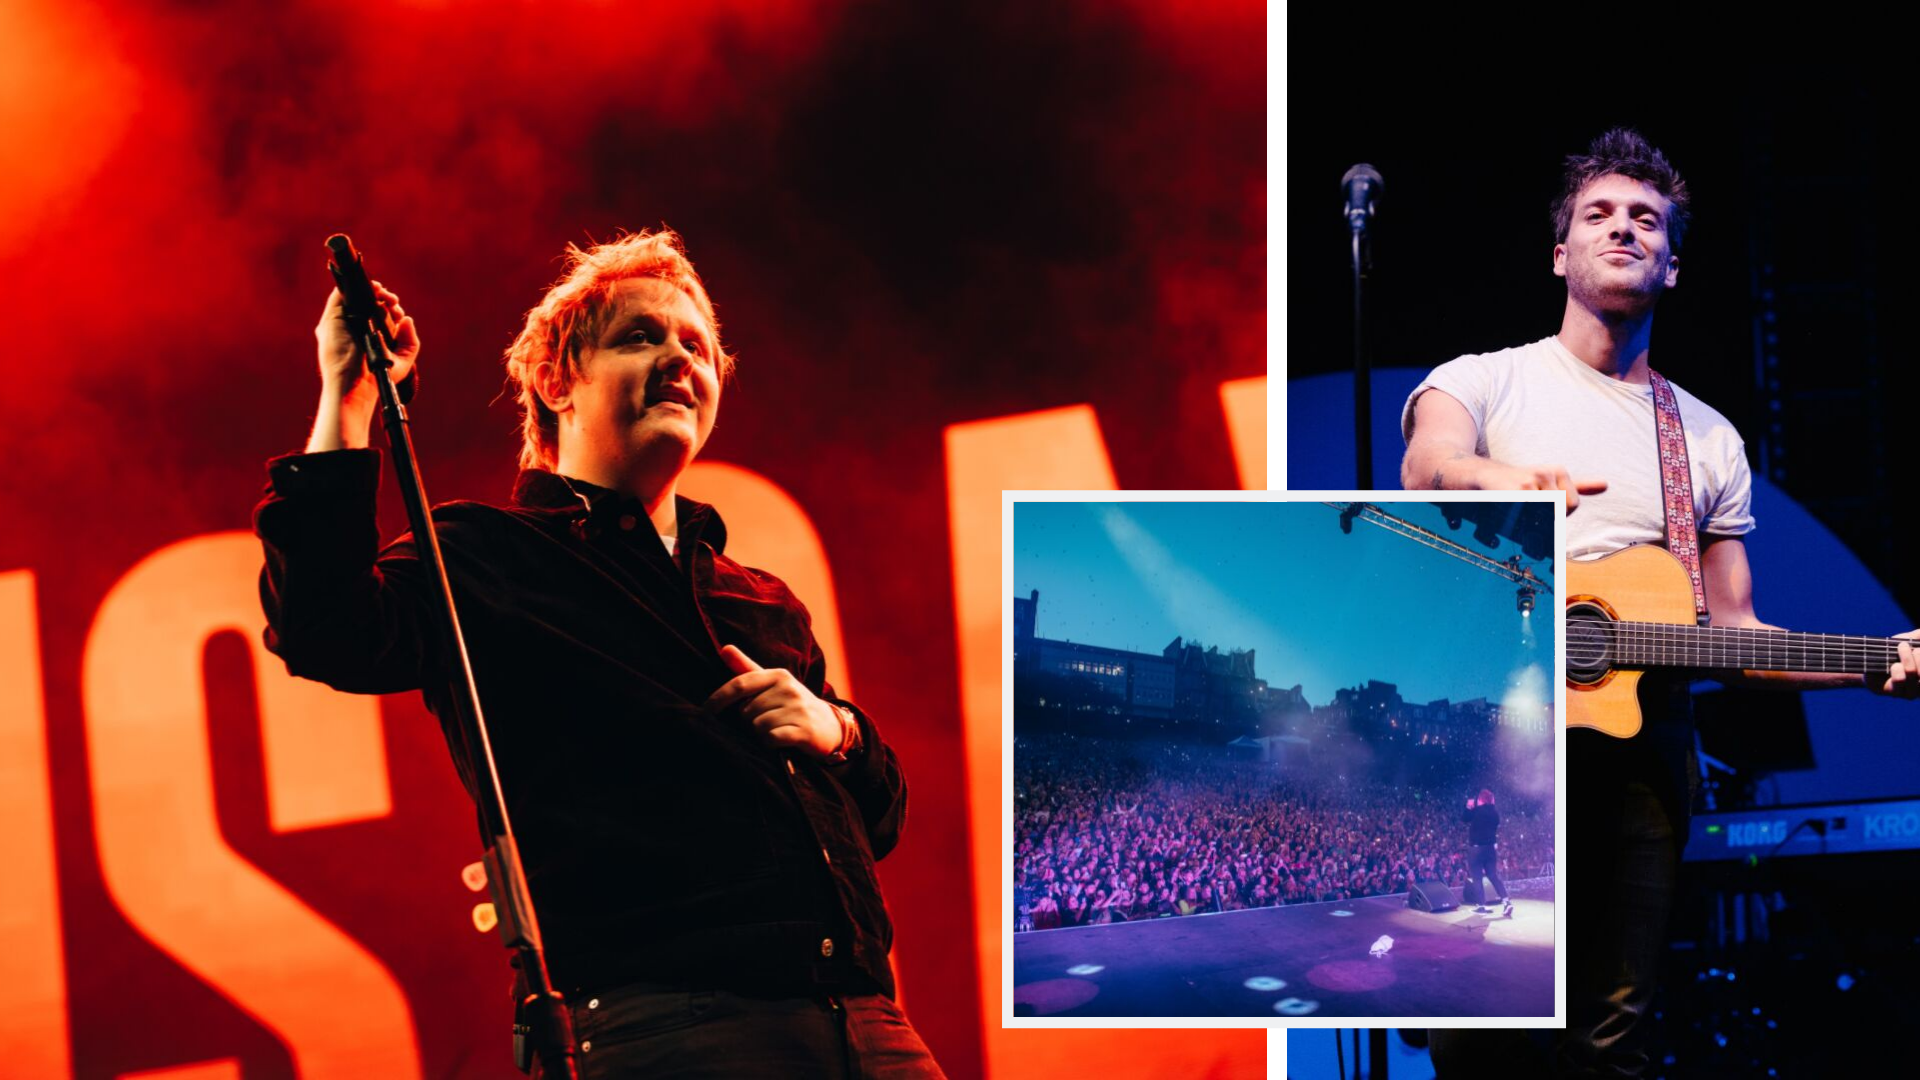 Lewis Capaldi 'pees himself' on stage at Edinburgh Summer Sessions - and jokes about a Paolo Nutini collab